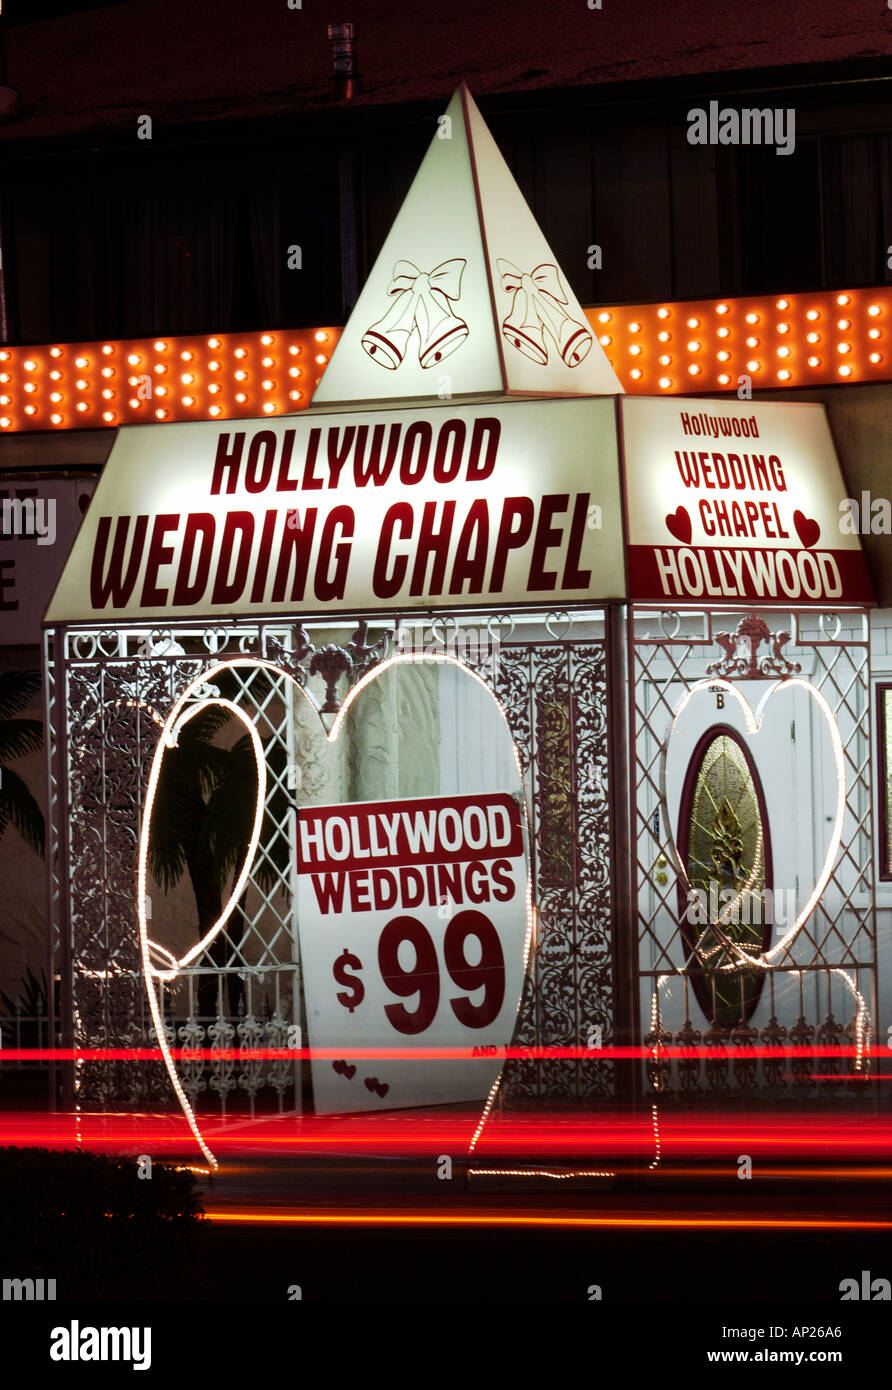 Hollywood Wedding Chapel Las Vegas Strip